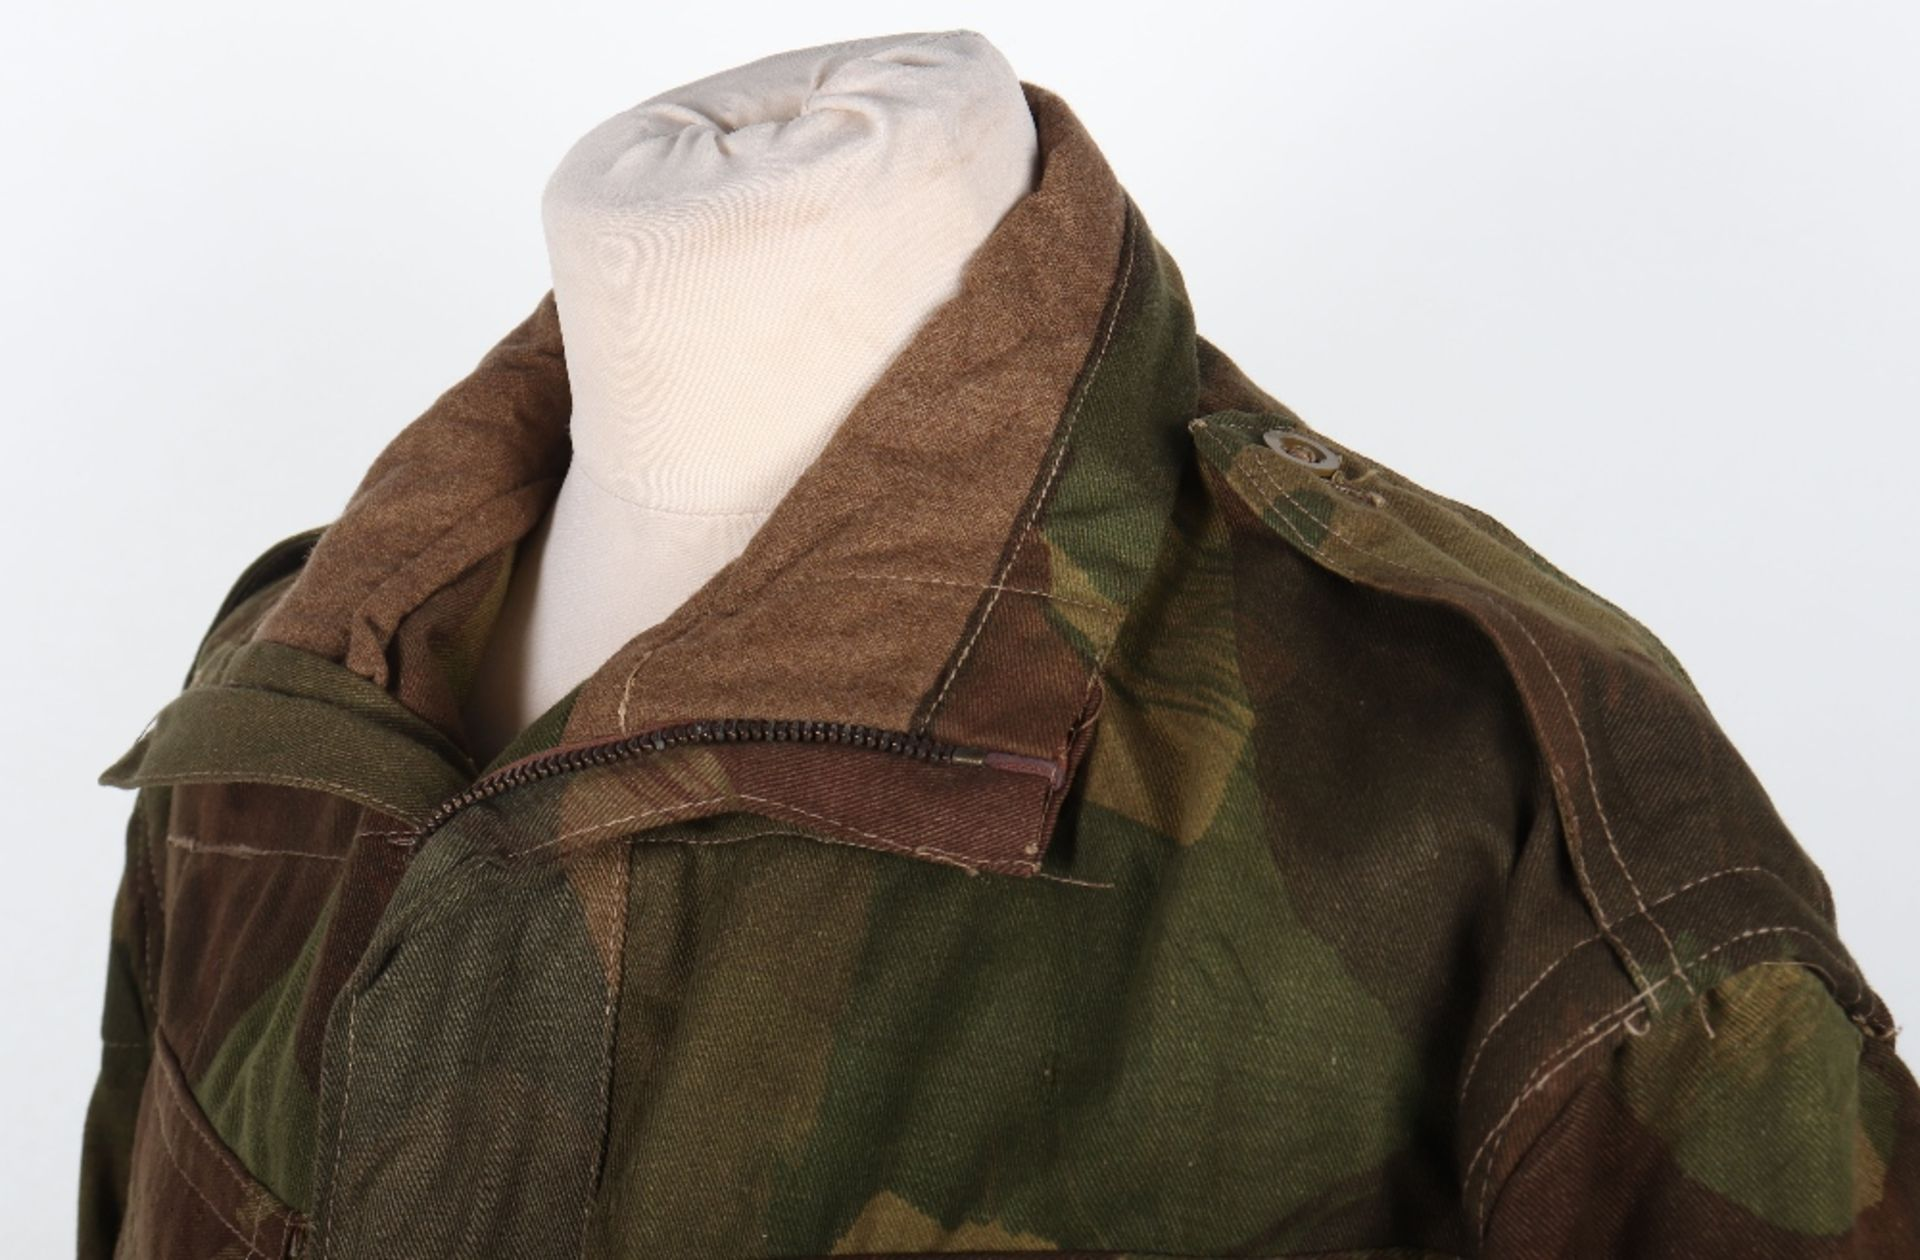 Mint Condition Large Size Airborne Forces Denison Smock - Image 5 of 17